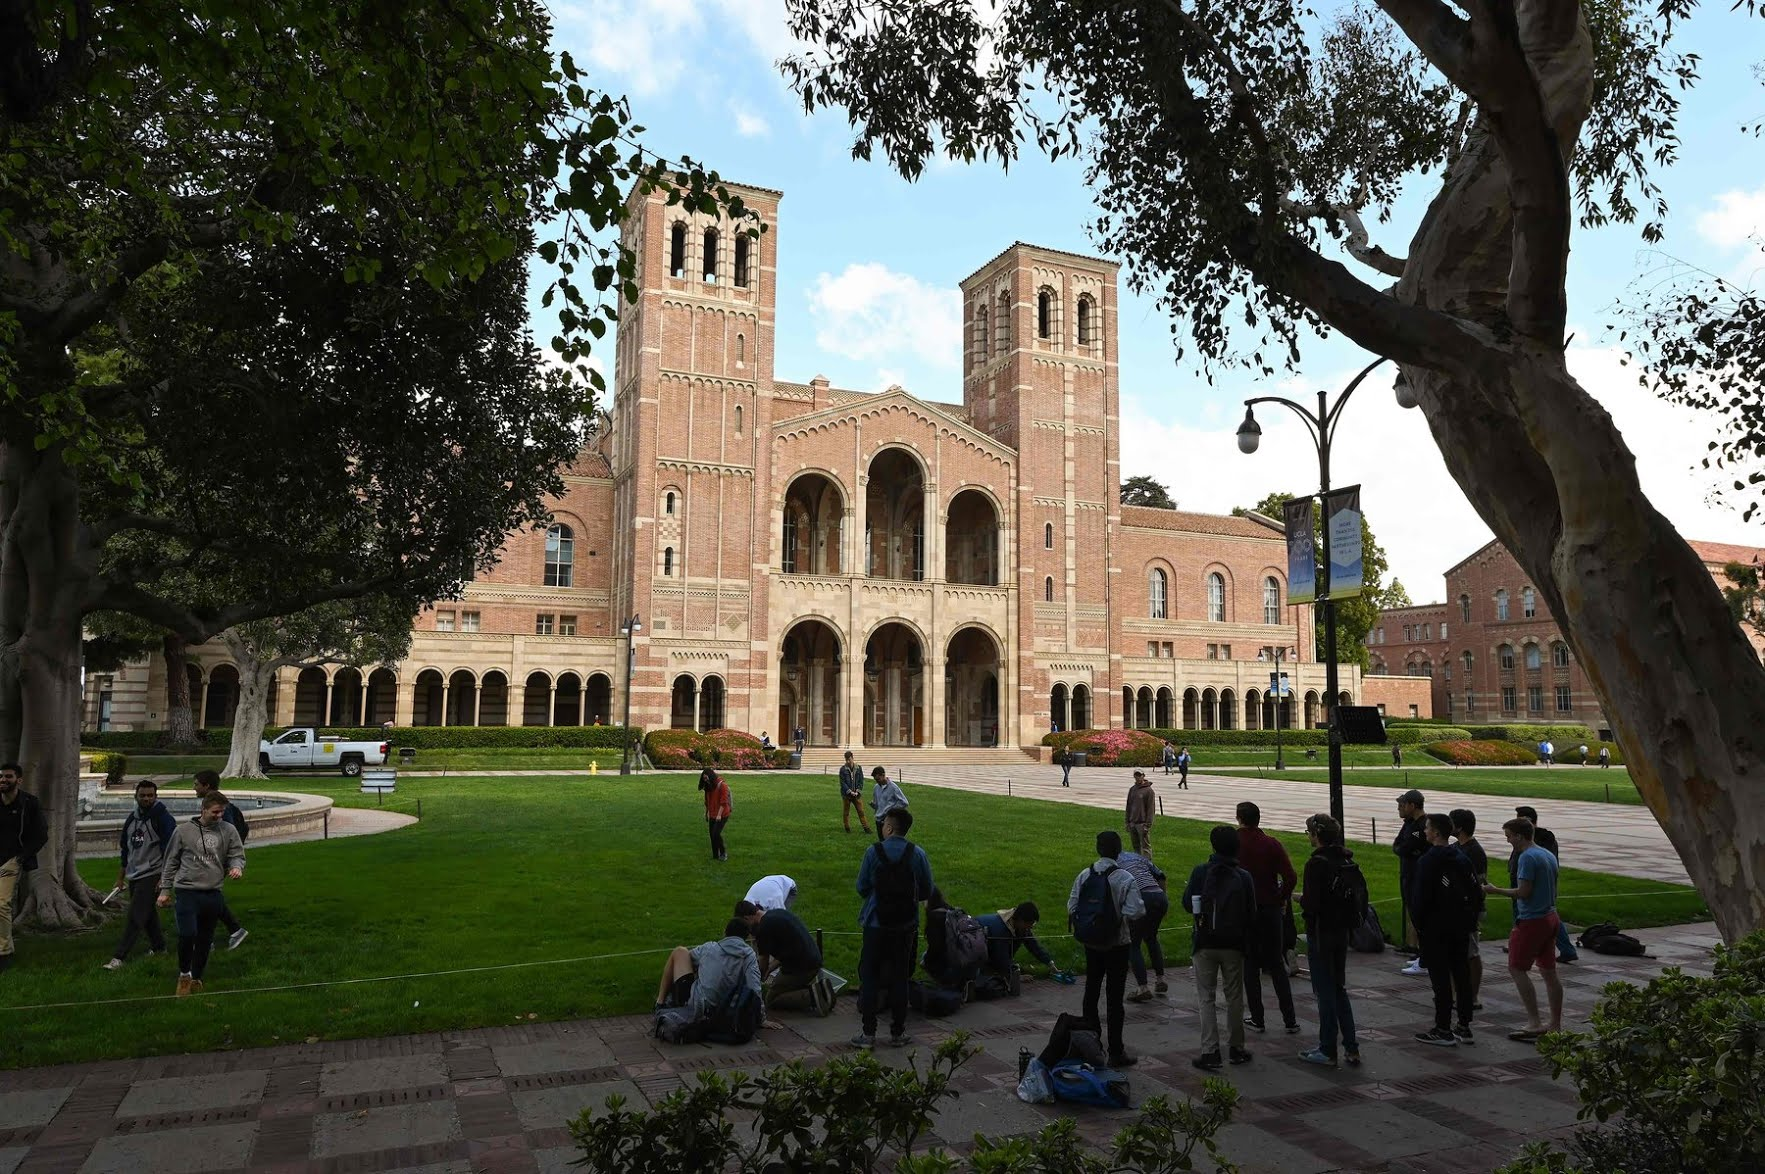 The campus of the University of California, Los Angeles. Colleges are facing major revenue losses after shutting down their campuses in March.